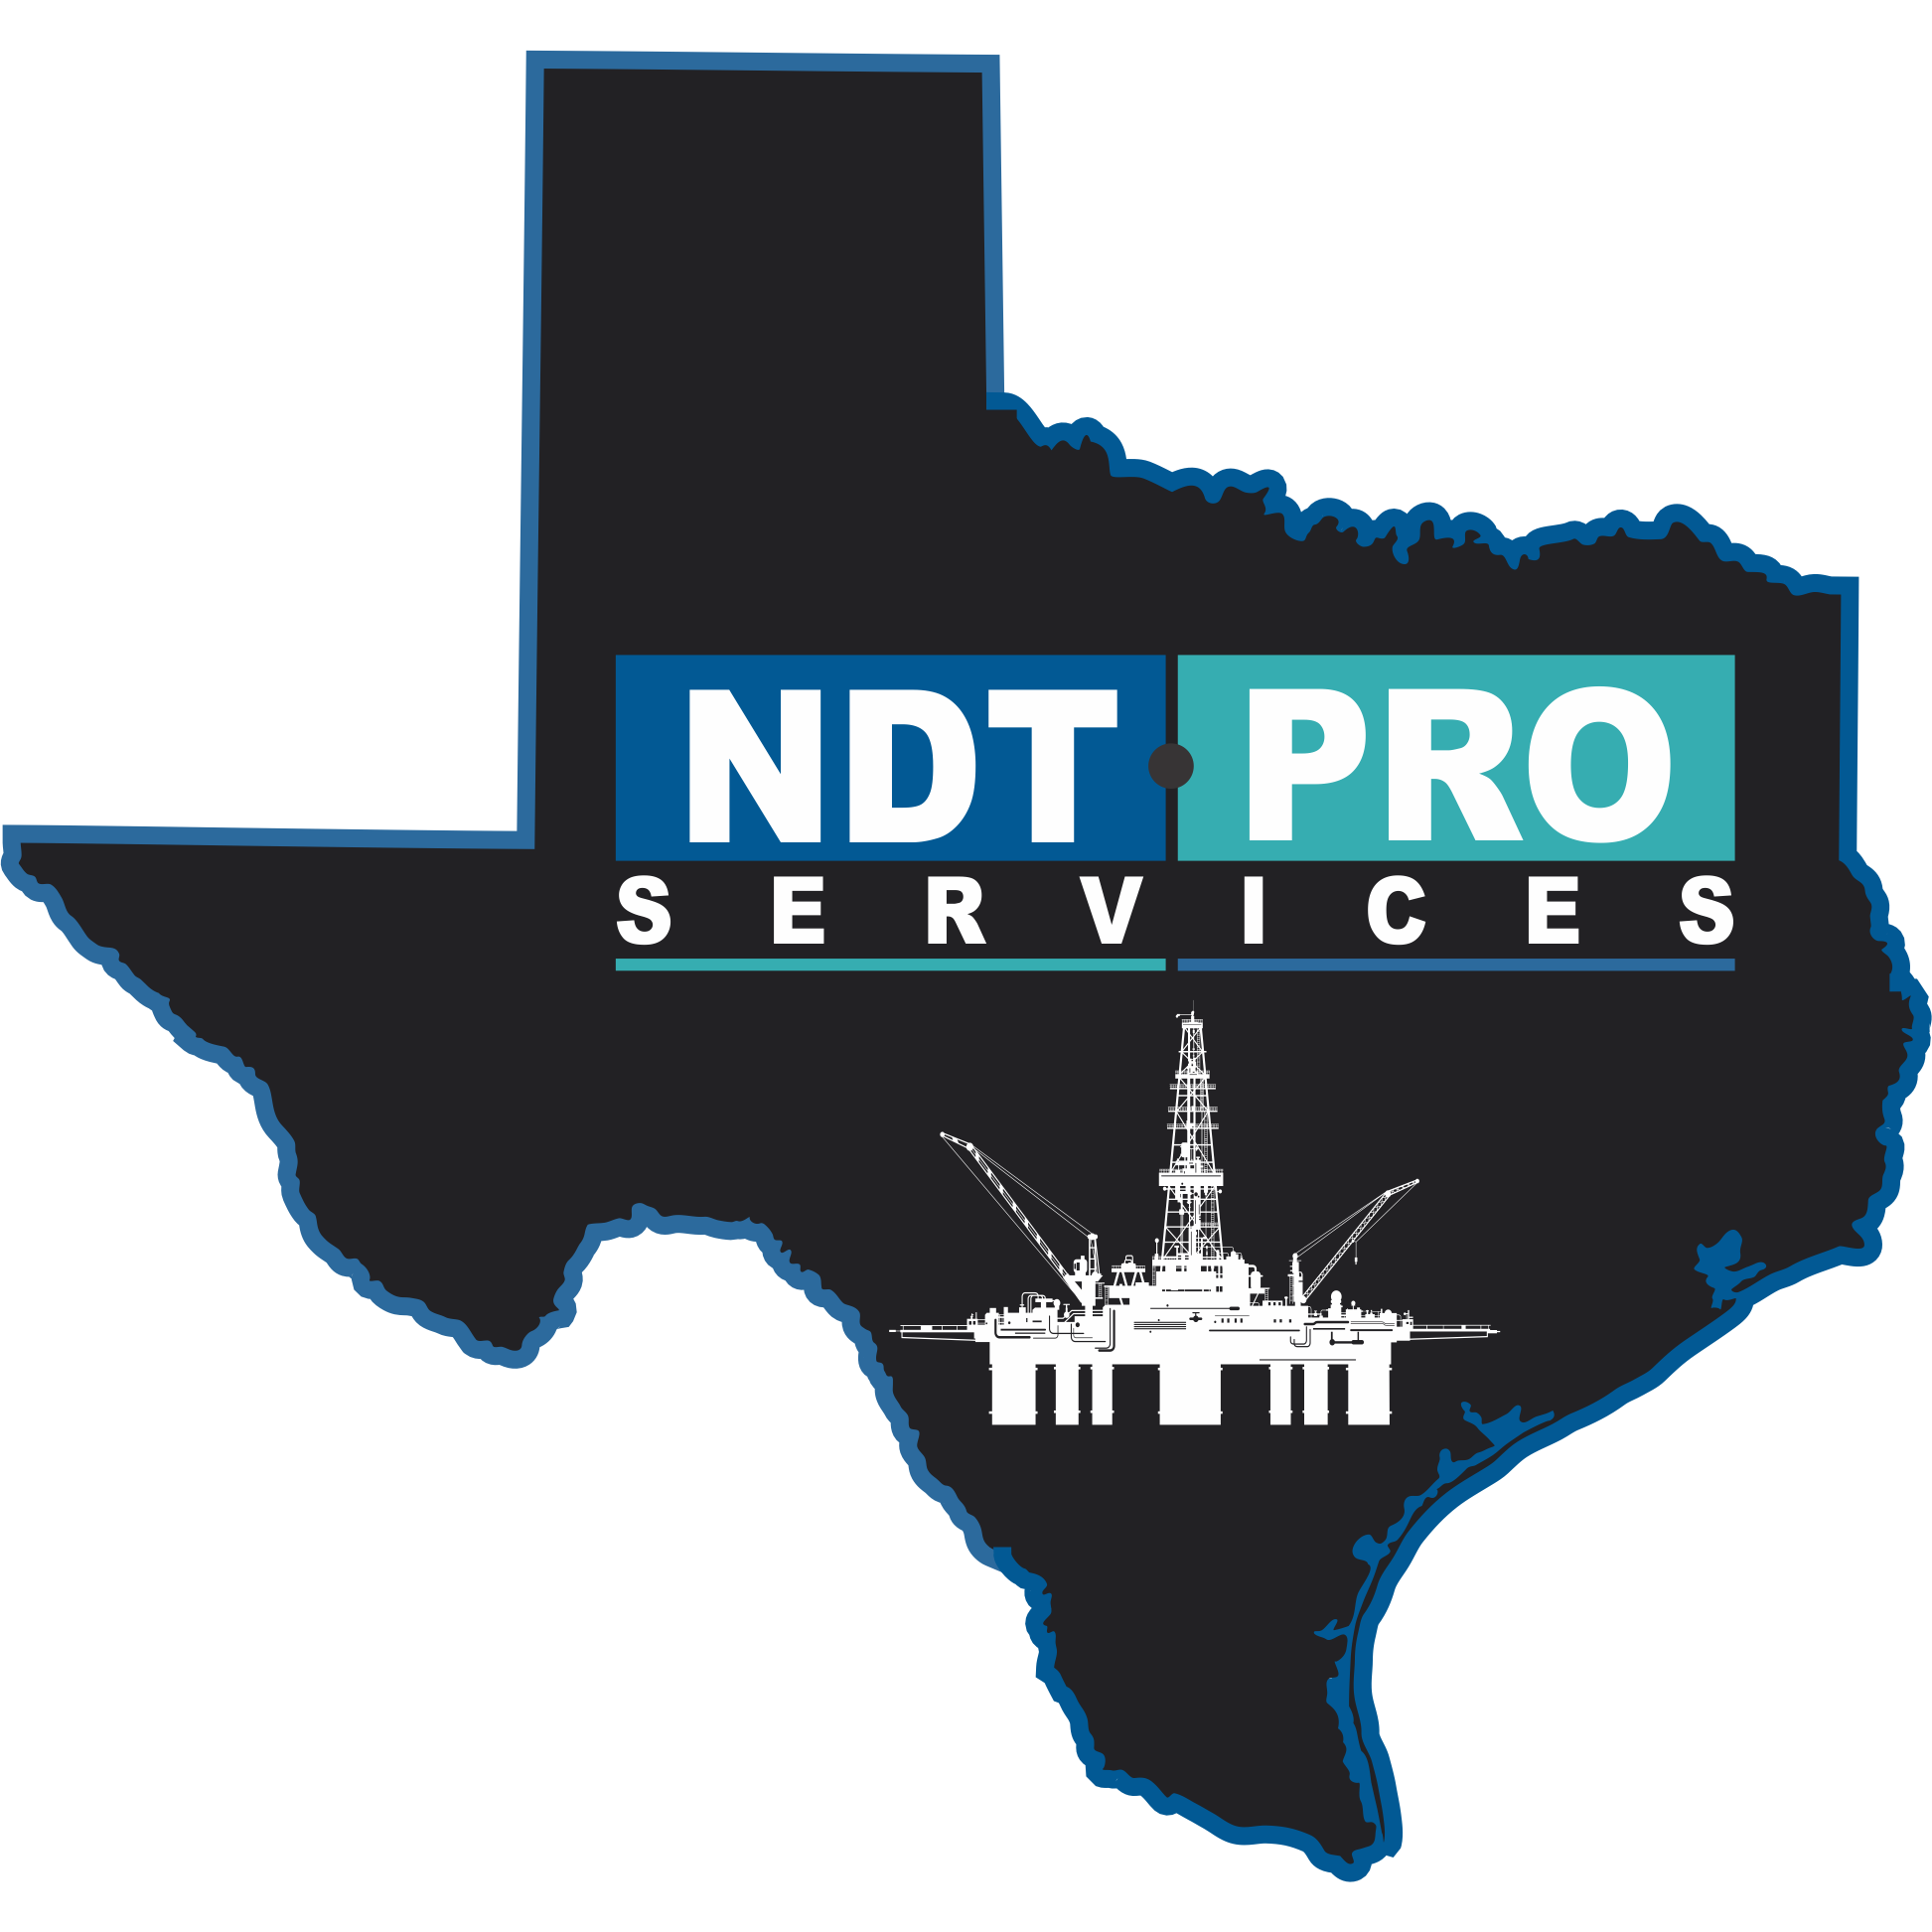 ndt-pro services image 13